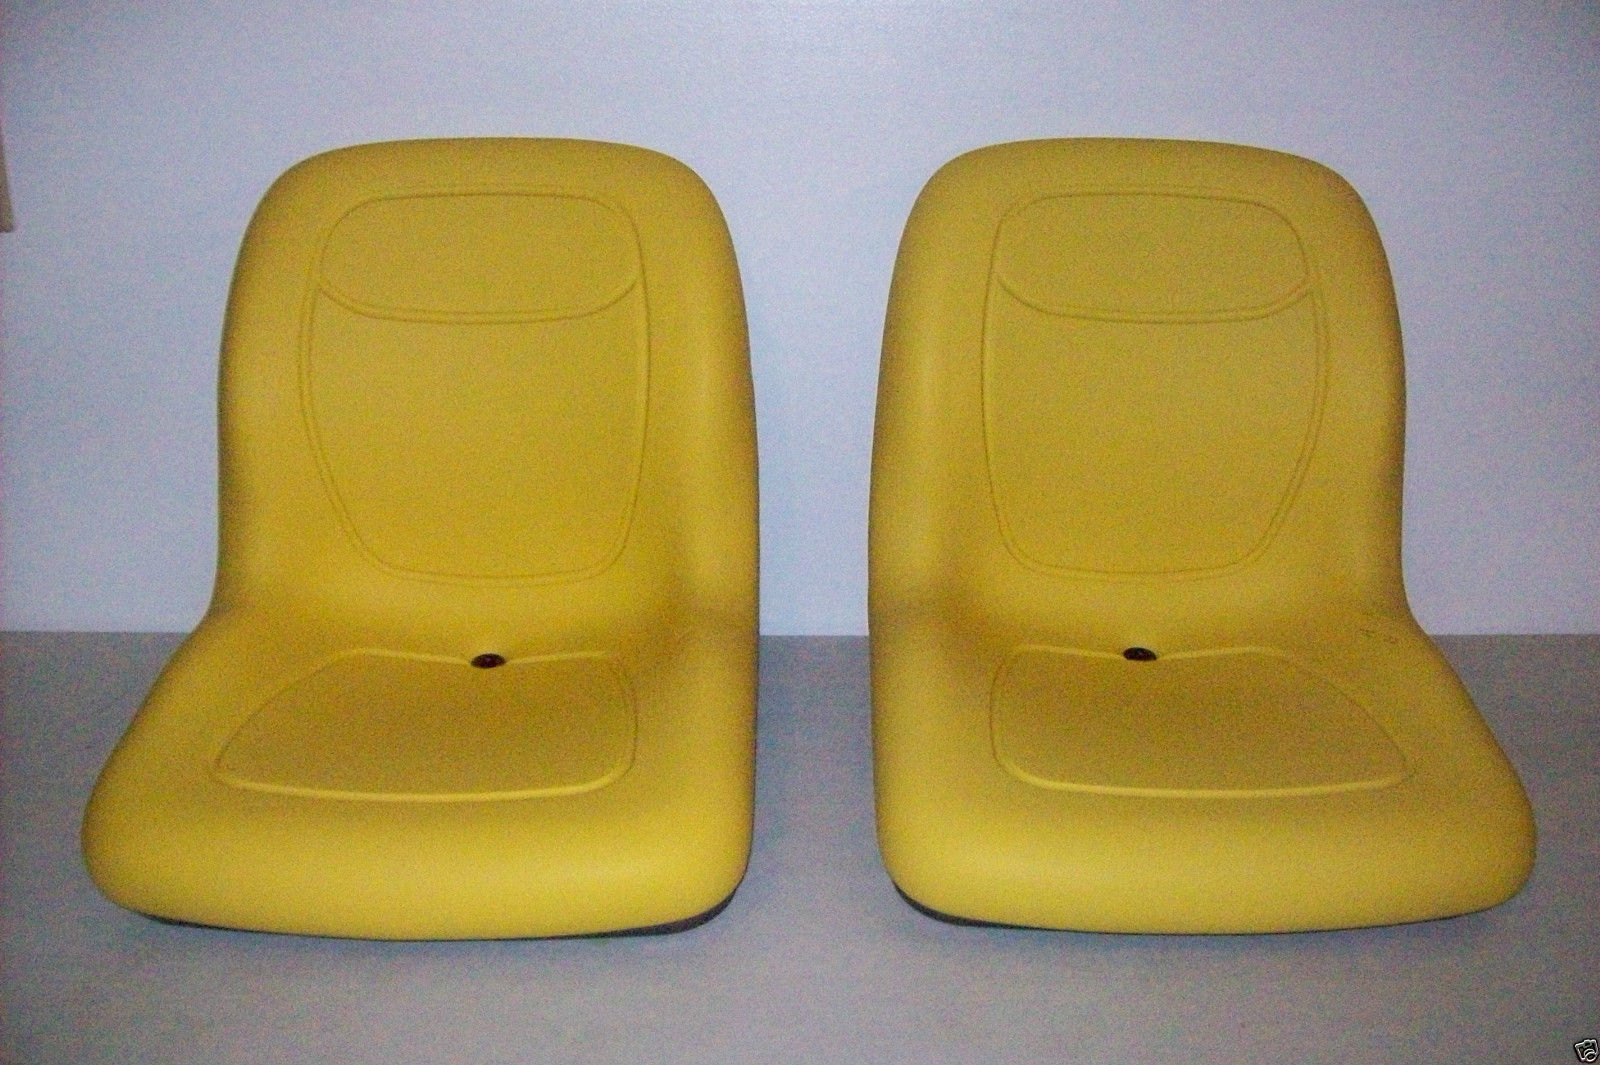 Two New Yellow High Back Seats John Deere Gators Made In The Usa By